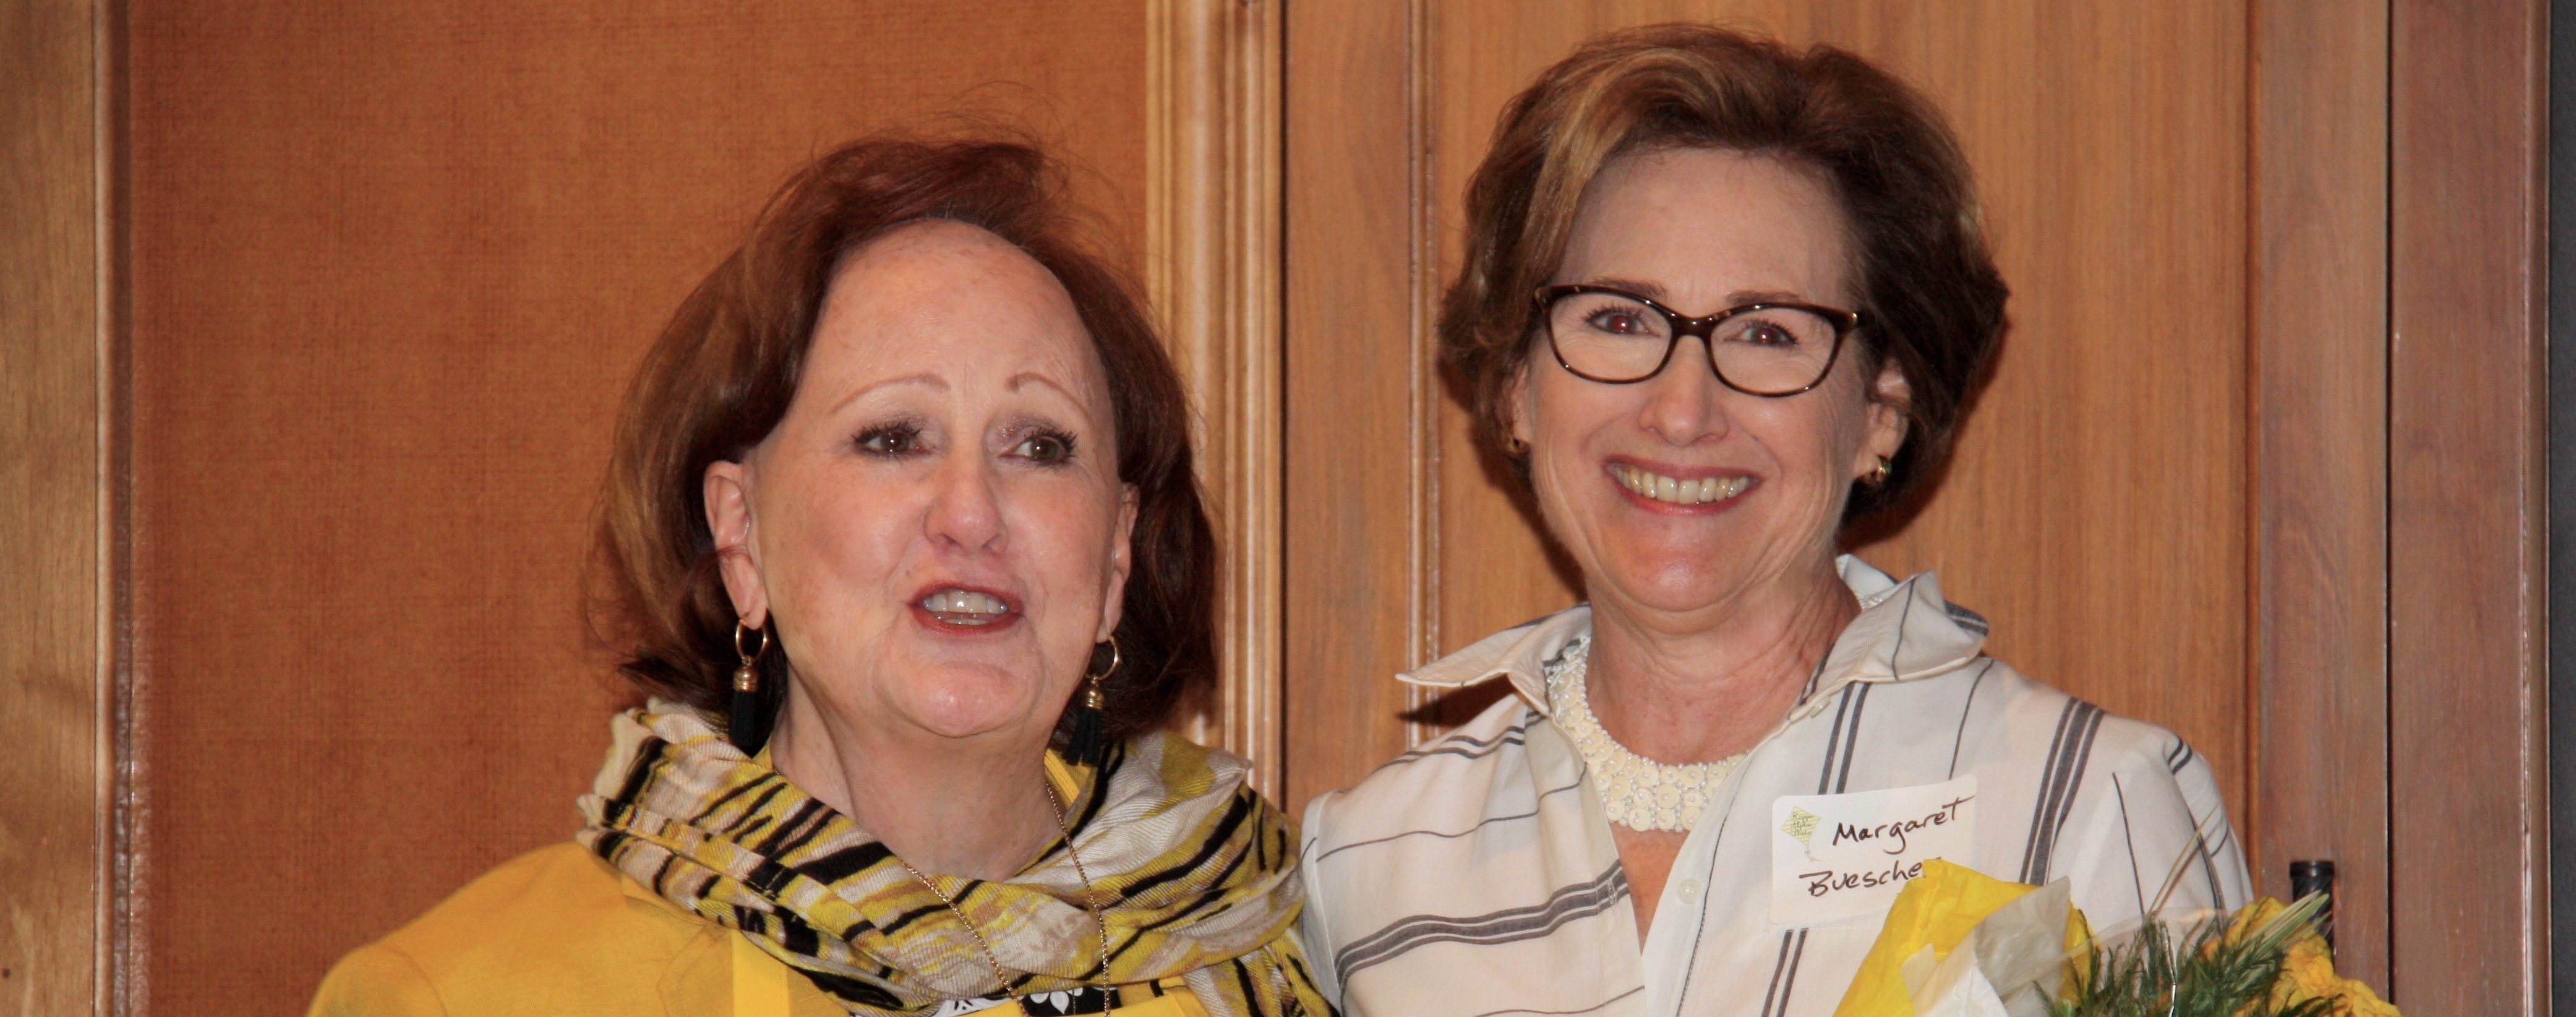 Incoming President Deborah Dunkum thanks Outgoing President Margaret Buescher for her contributions to our chapter.